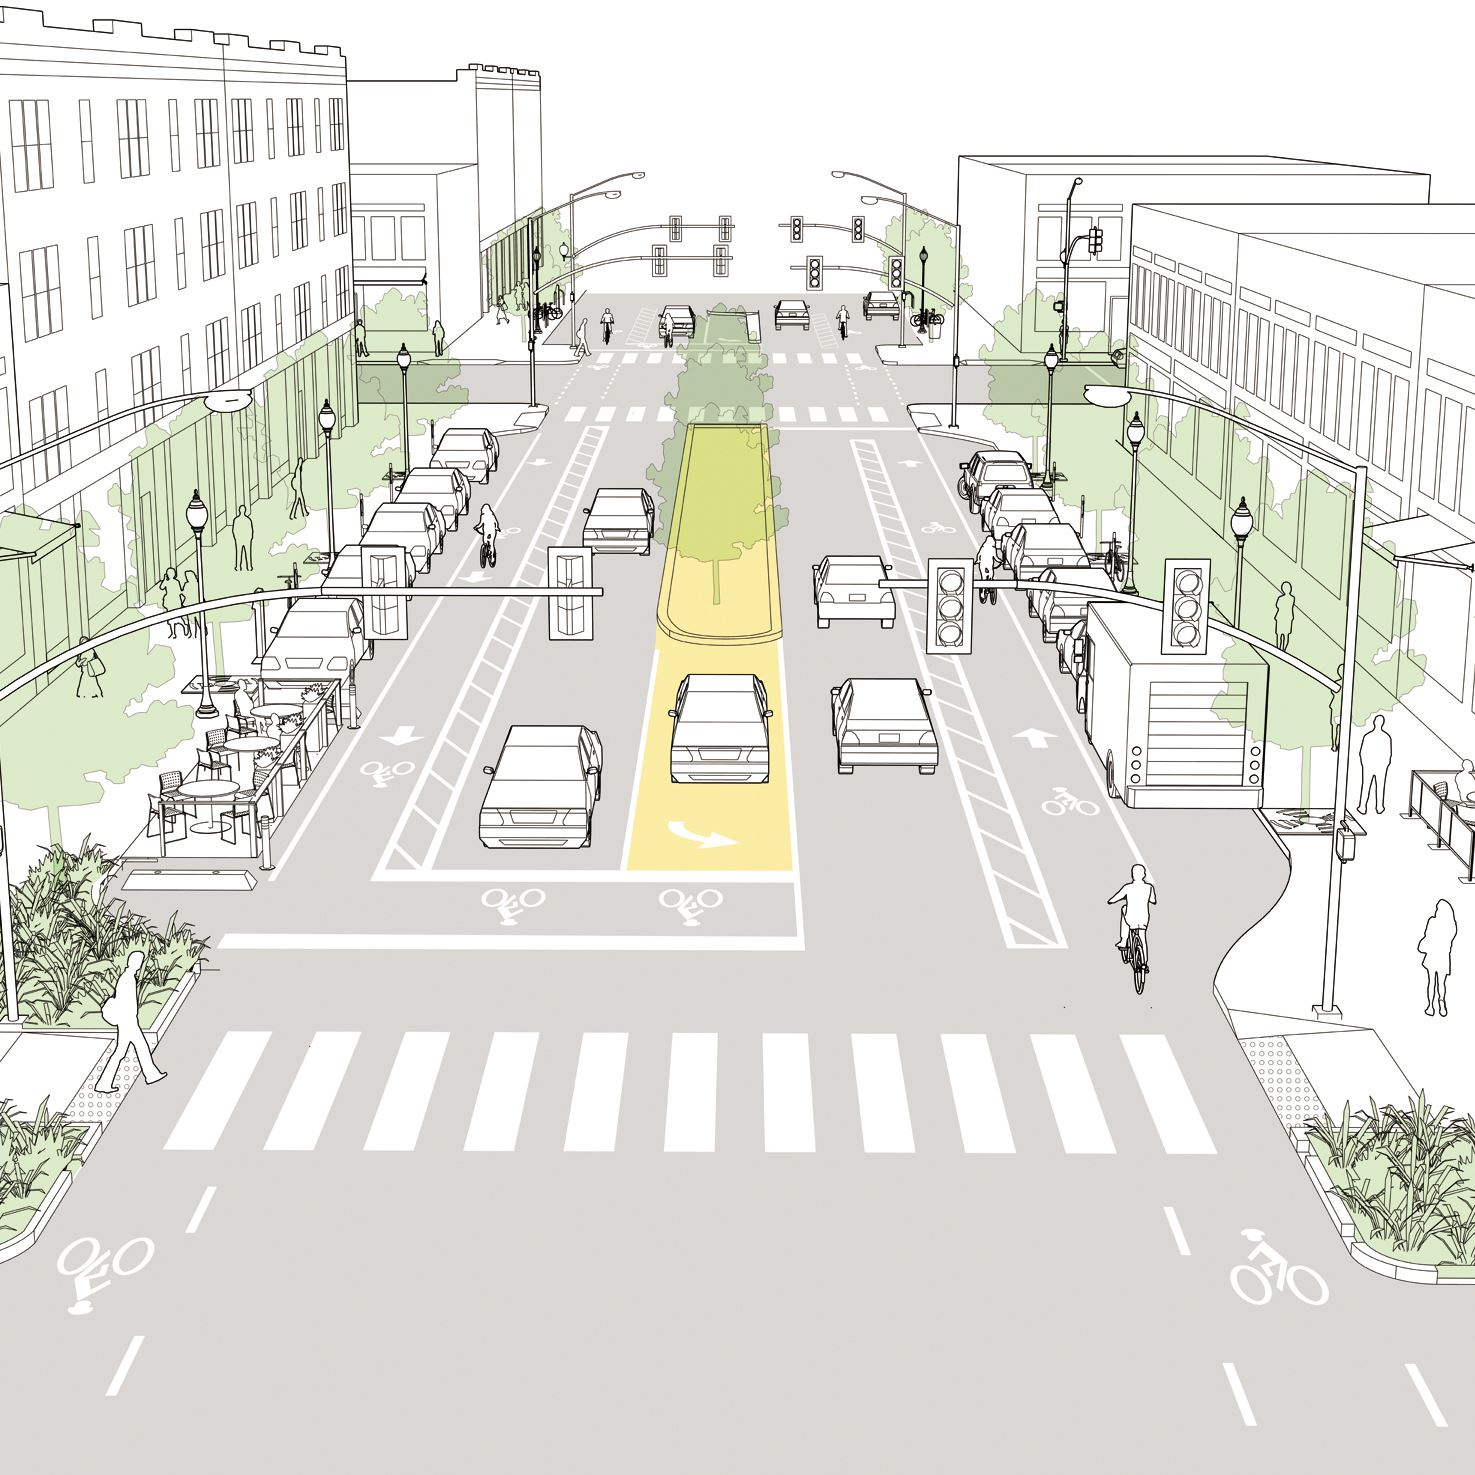 Graphic of Neighborhood-main-street redesign project